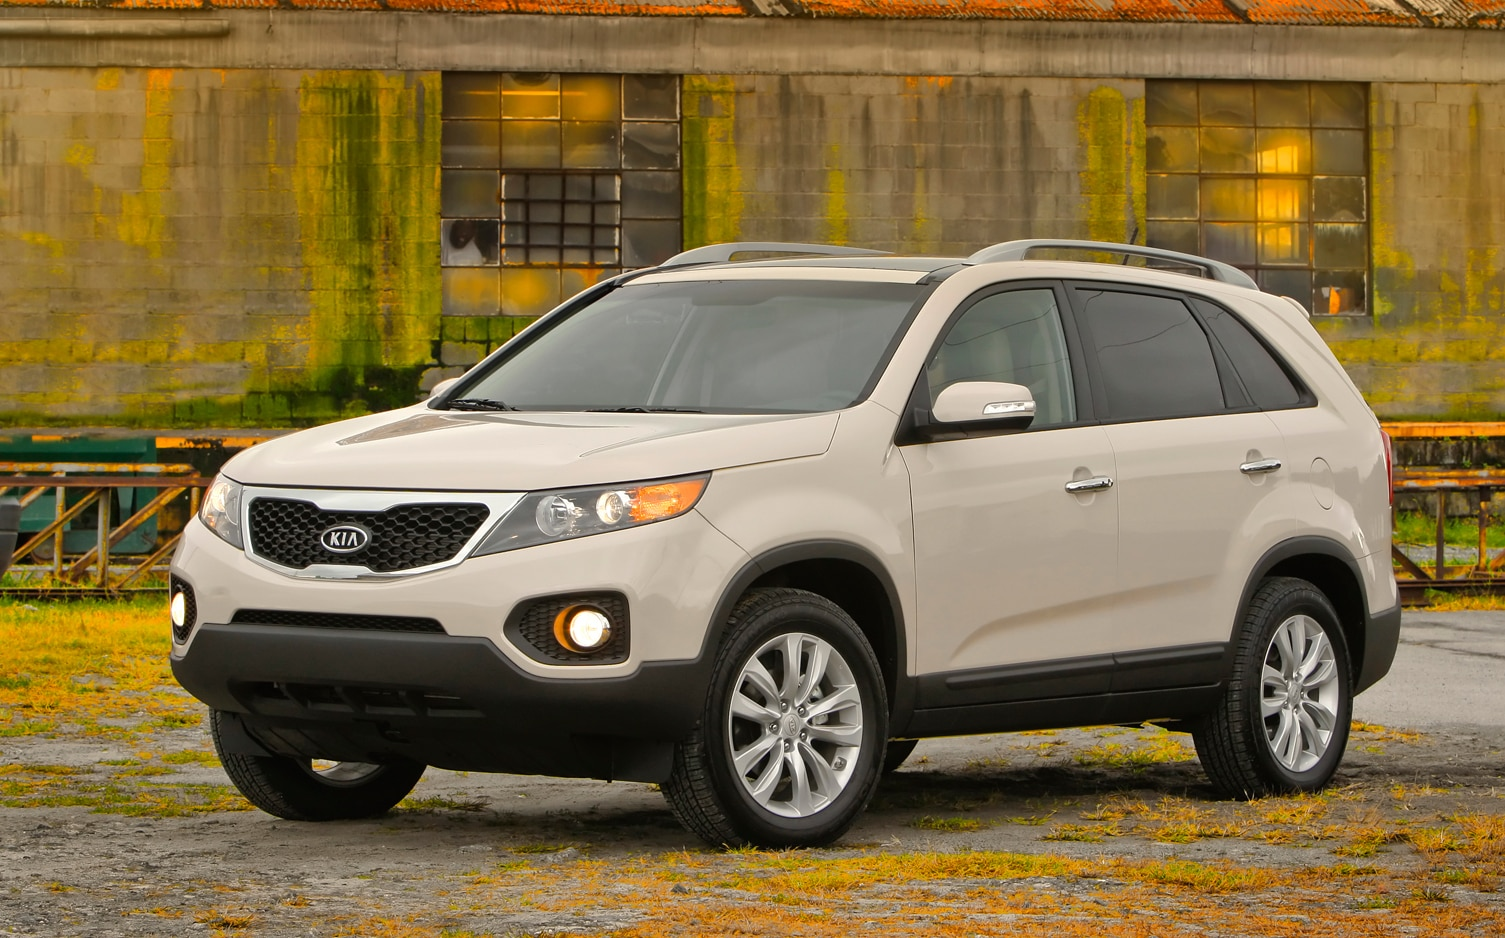 2012 Kia Sorento Front Left Side View 2